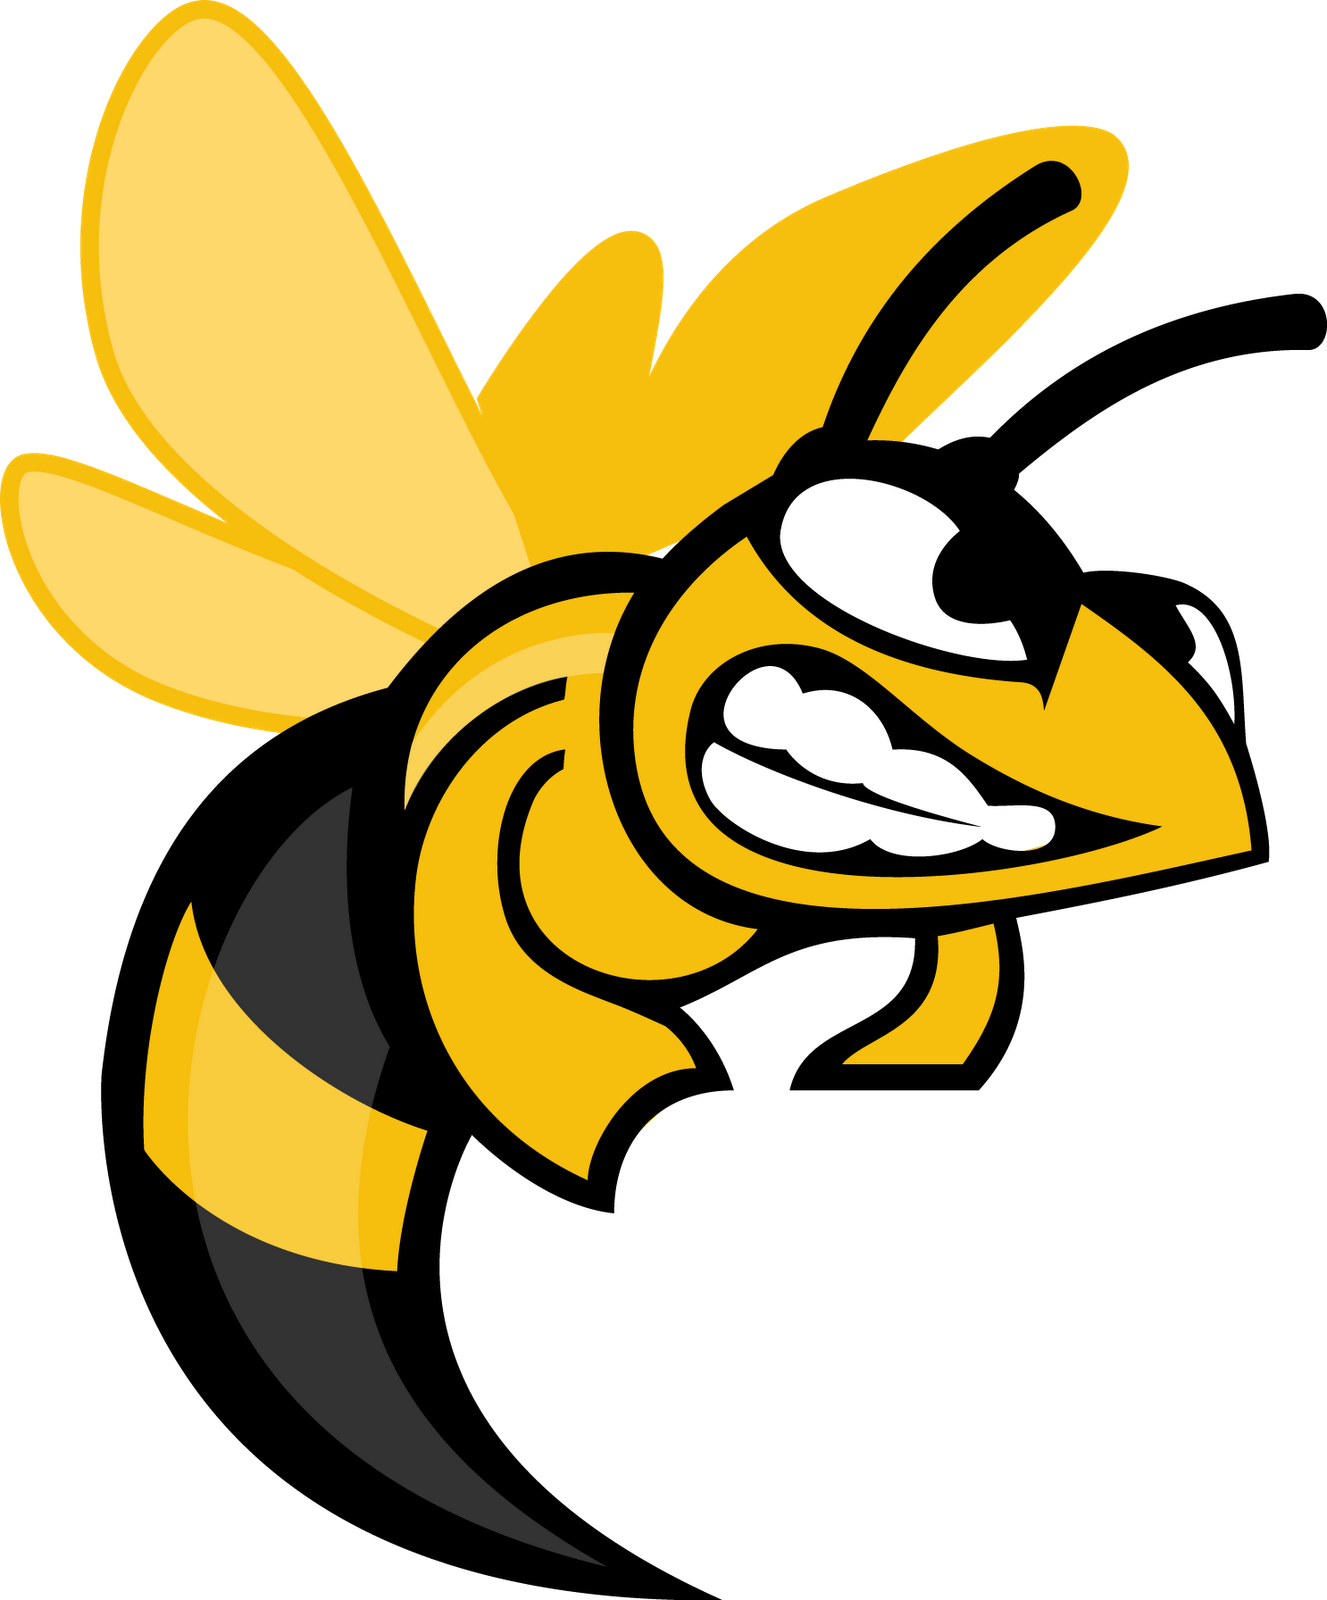 jpg black and white Bees clipart hornet